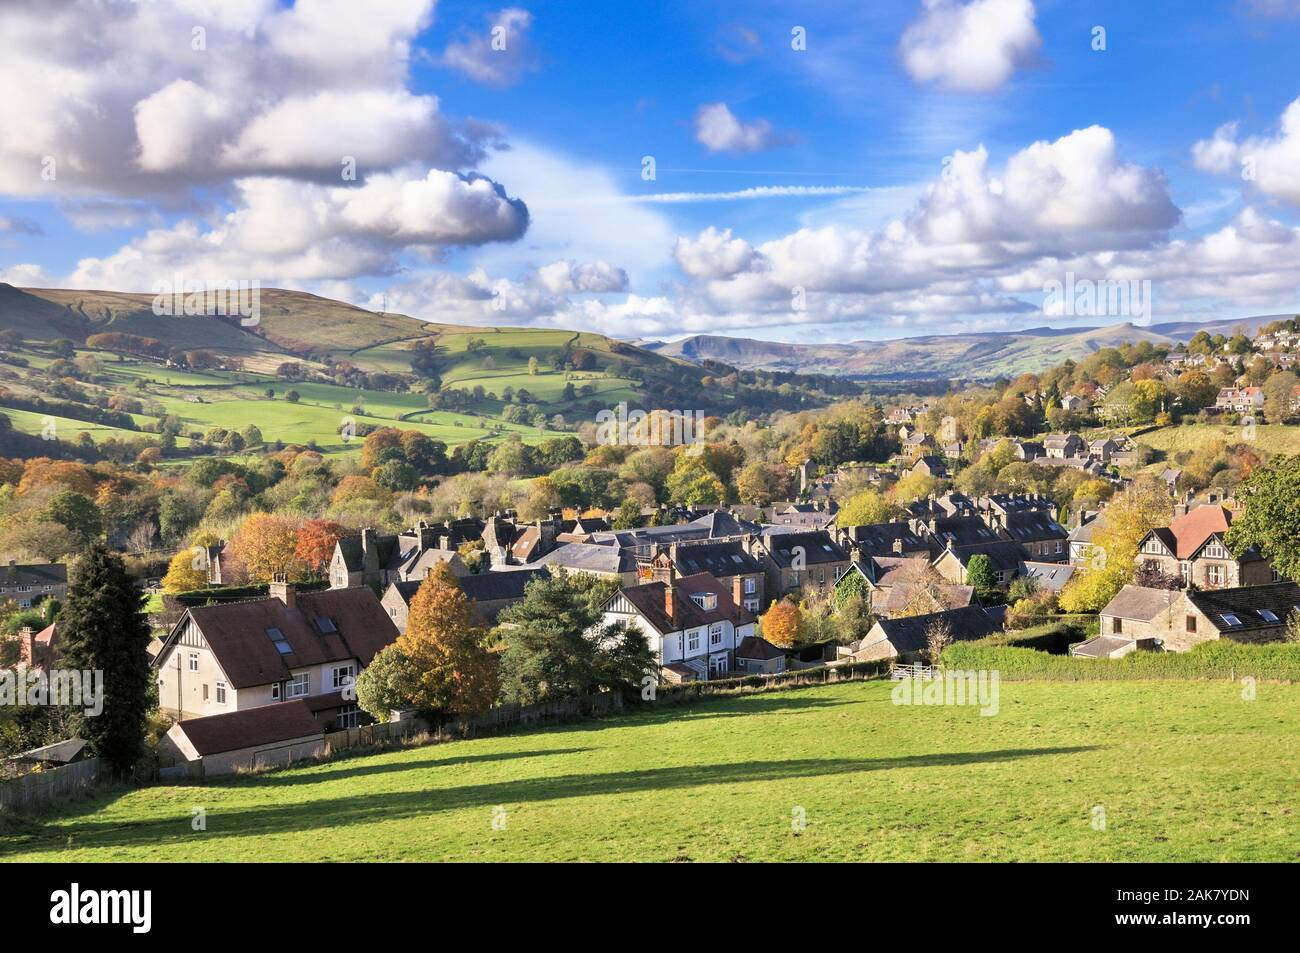 A sunny scenic landscape view of the village of Hathersage and Hope Valley towards Mam Tor and Lose Hill, Peak District National Park, England, UK Stock Photo